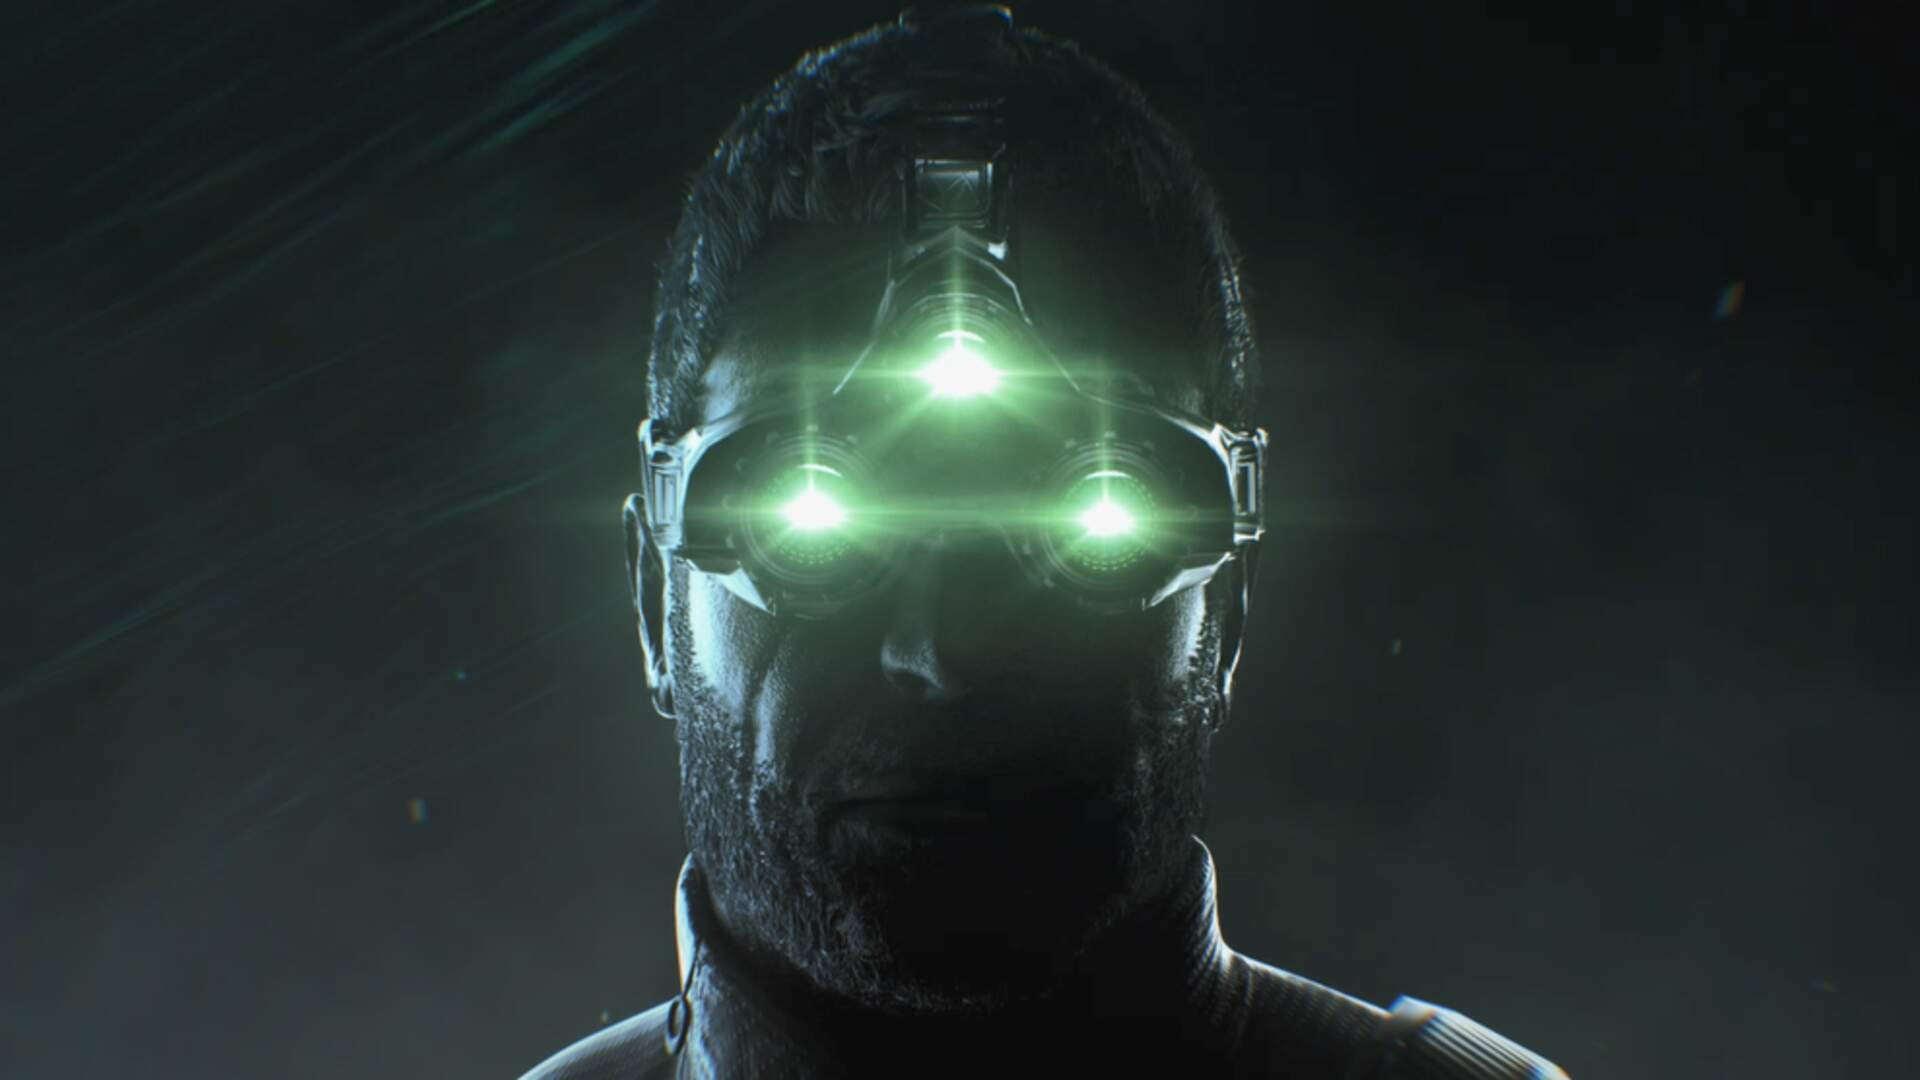 Sam Fisher Makes a Sad Shoutout to Metal Gear's Snake in Ghost Recon Wildlands